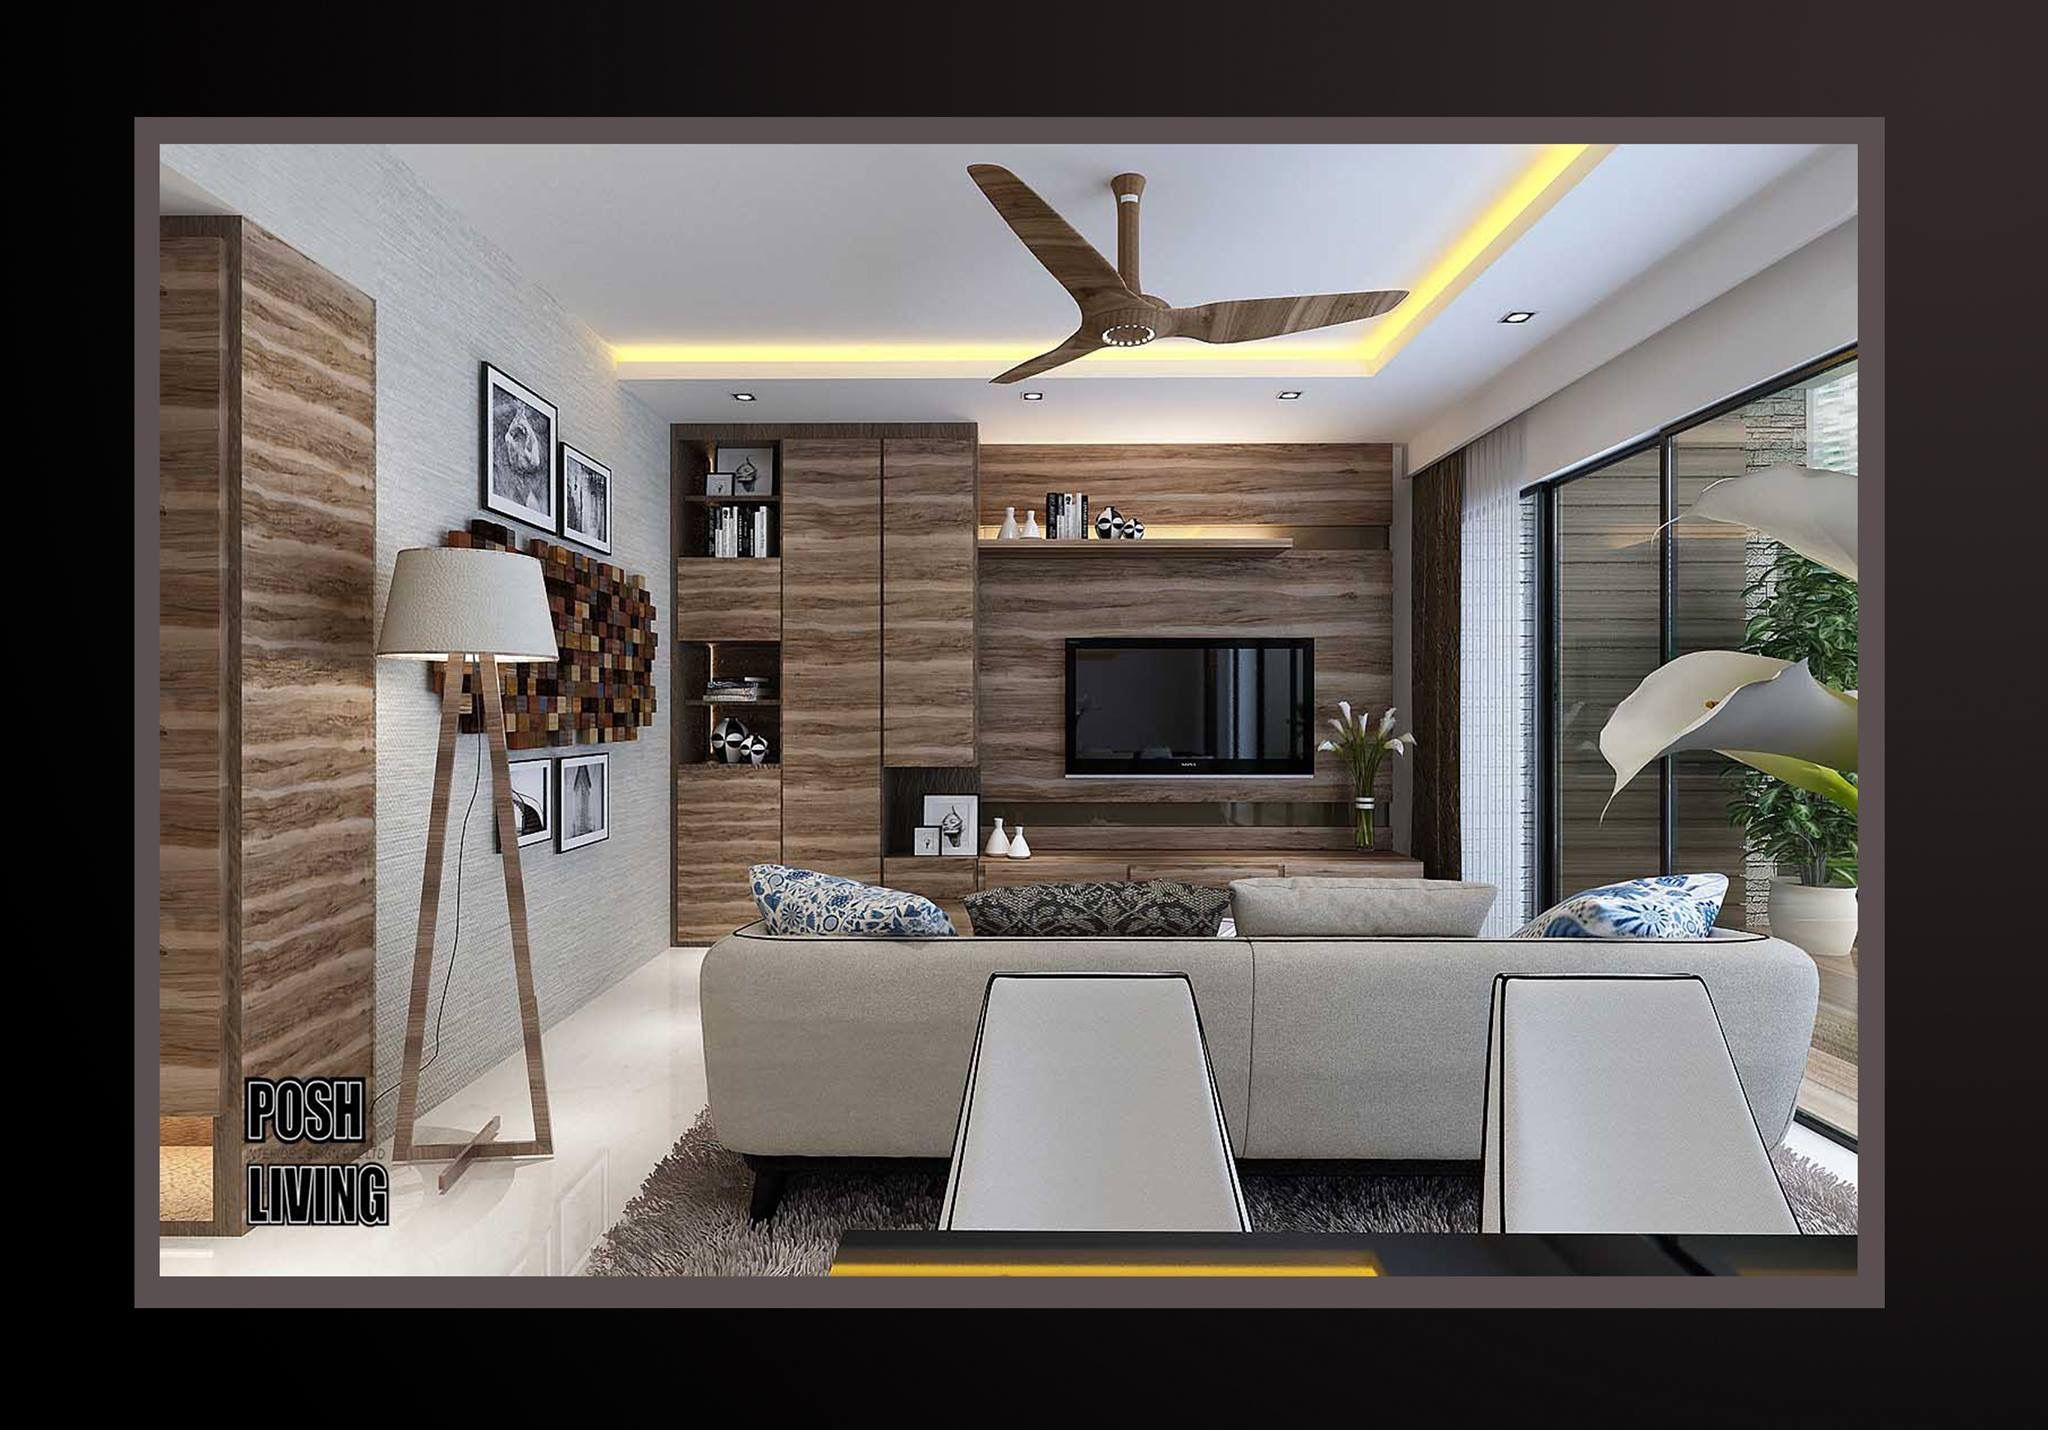 Interior design themes condo home interiors decor projects drop also pin by shi yin on pinterest rh in